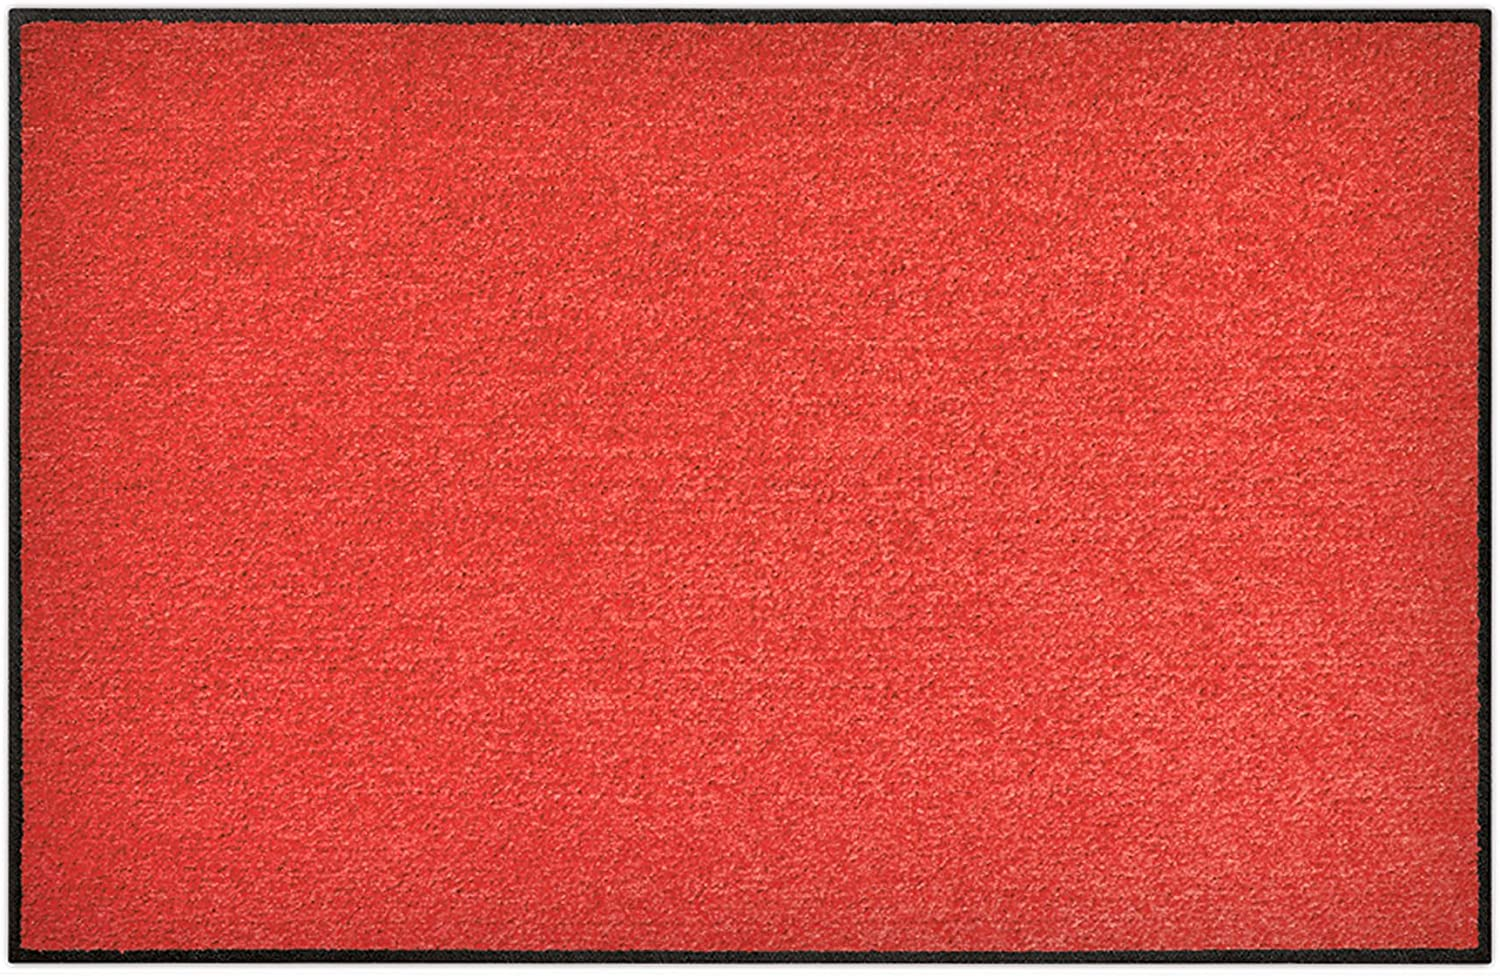 SLU1030-050x075 Doormat   Door mat - Salonloewe - Red ca. 19.7 x 29.5 in by keine Marke